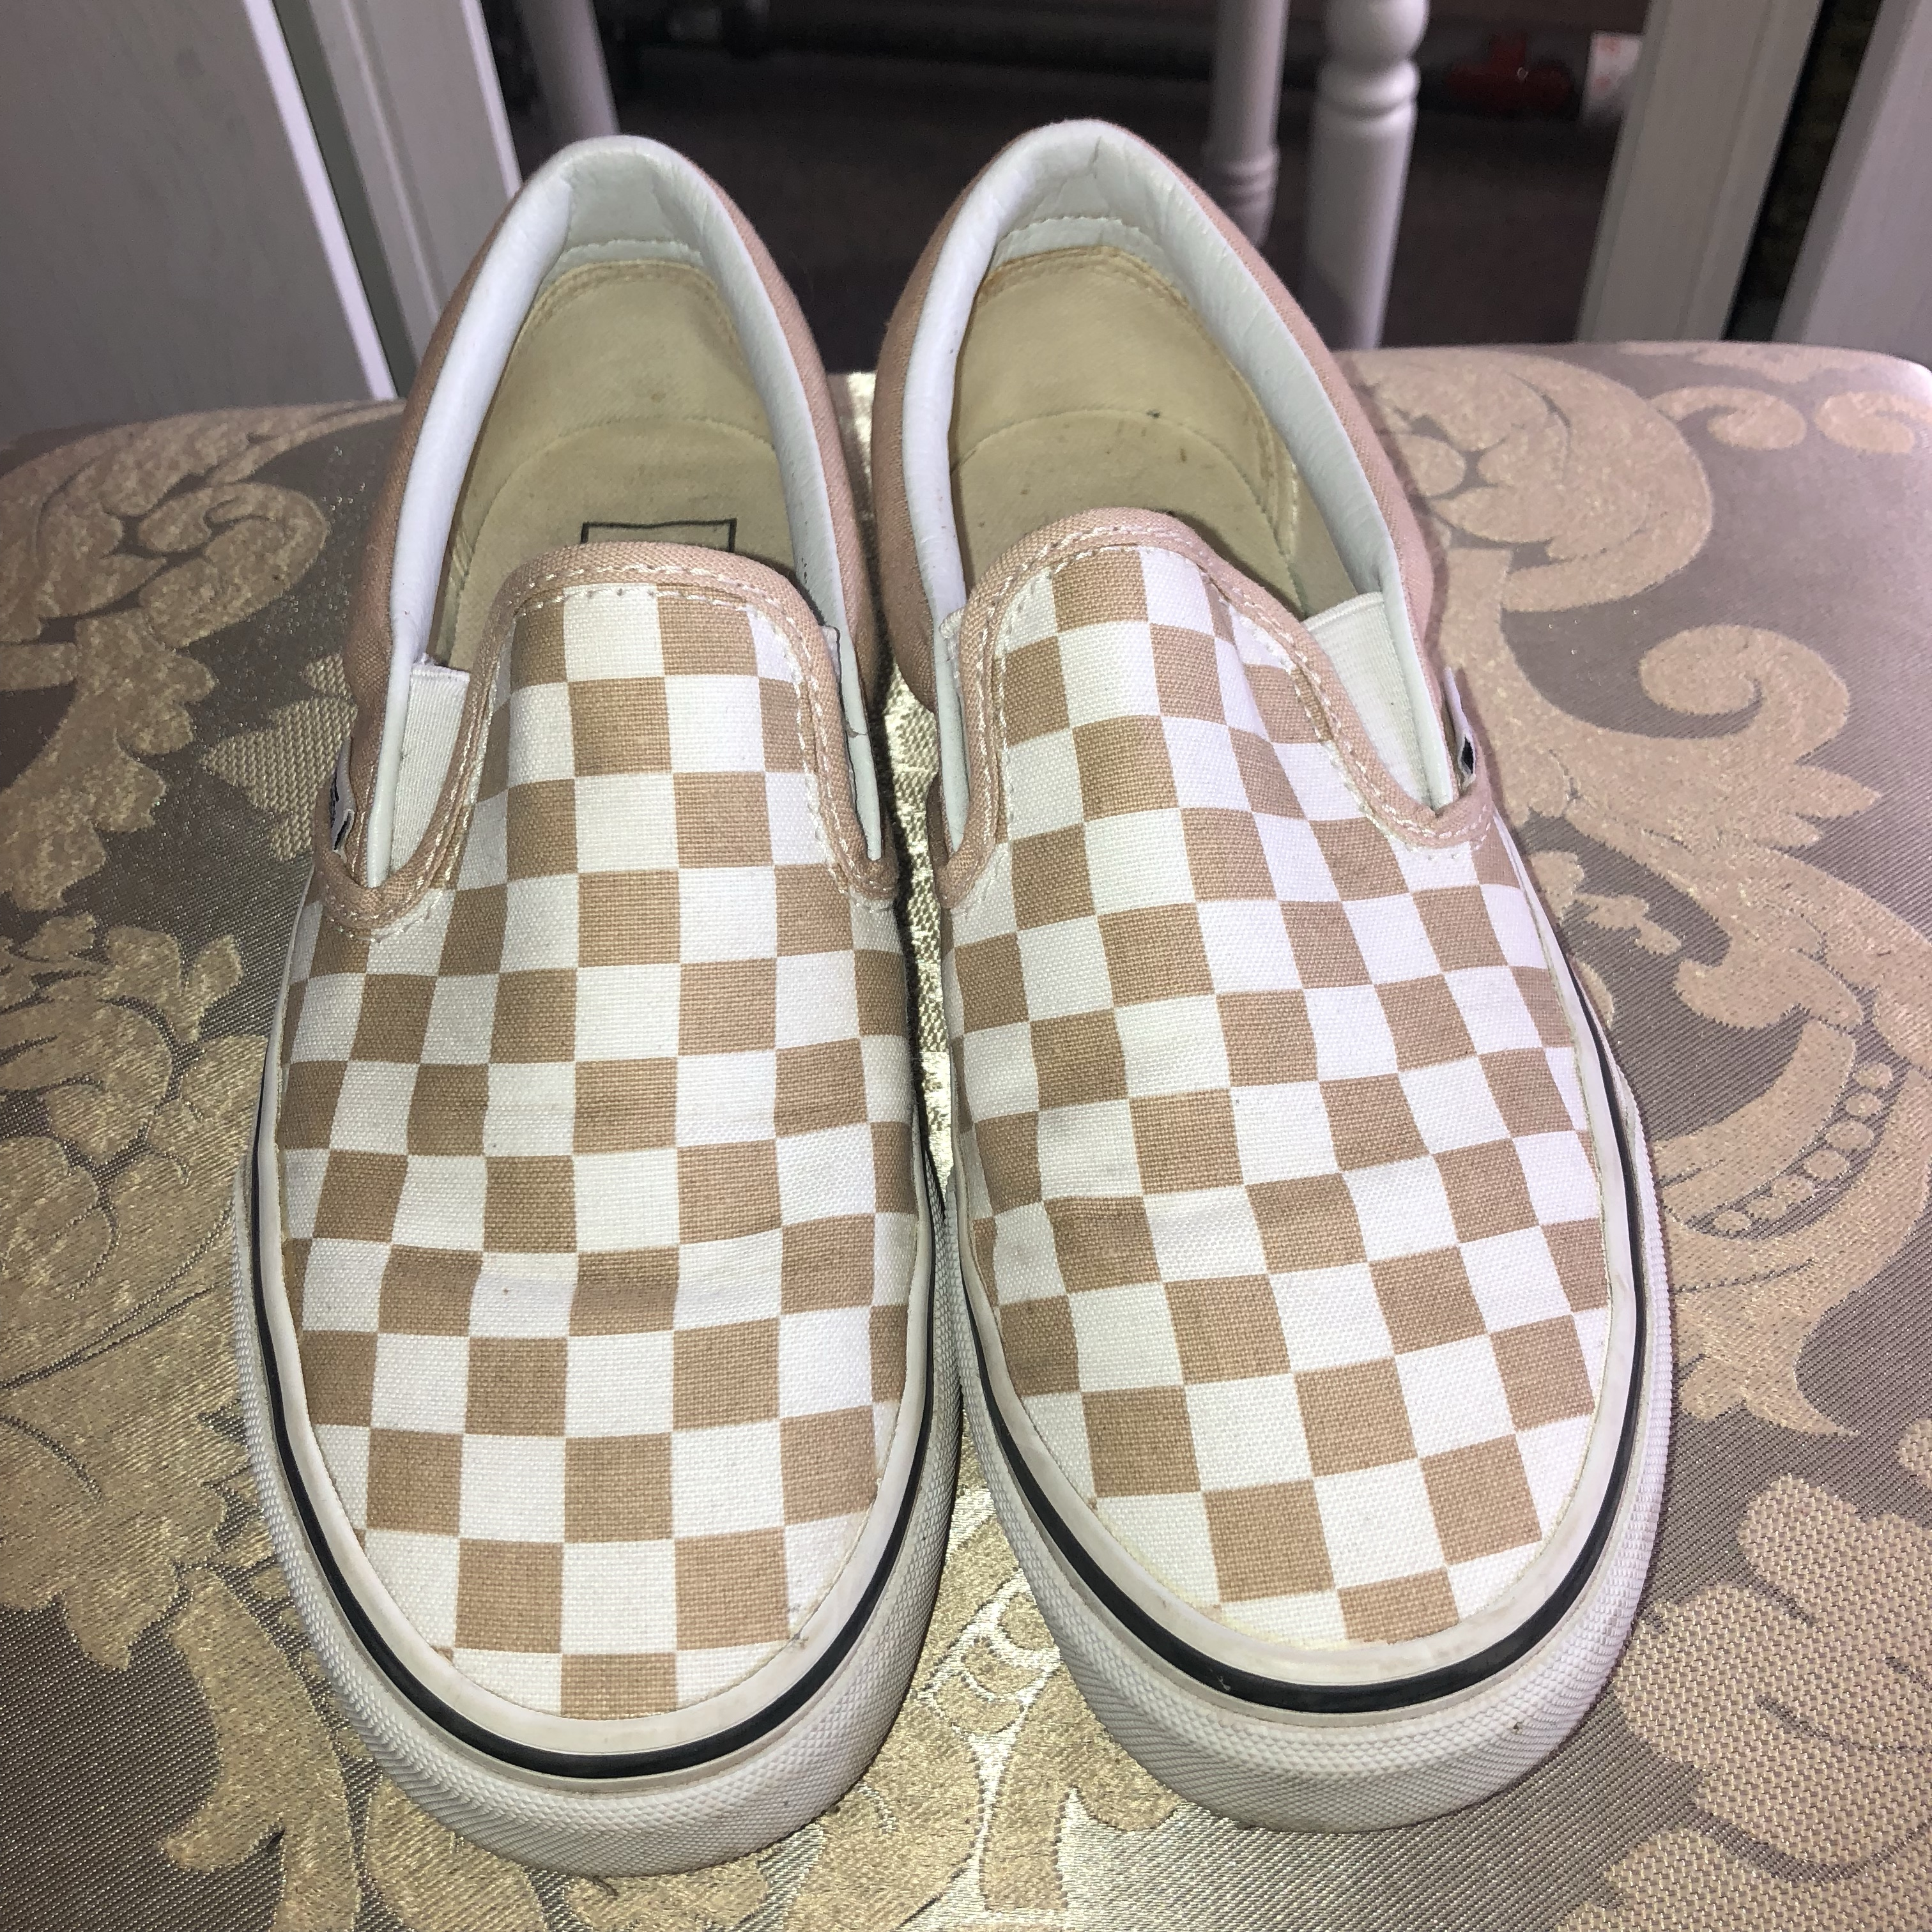 Vans checkerboard in white \u0026 nude. Only